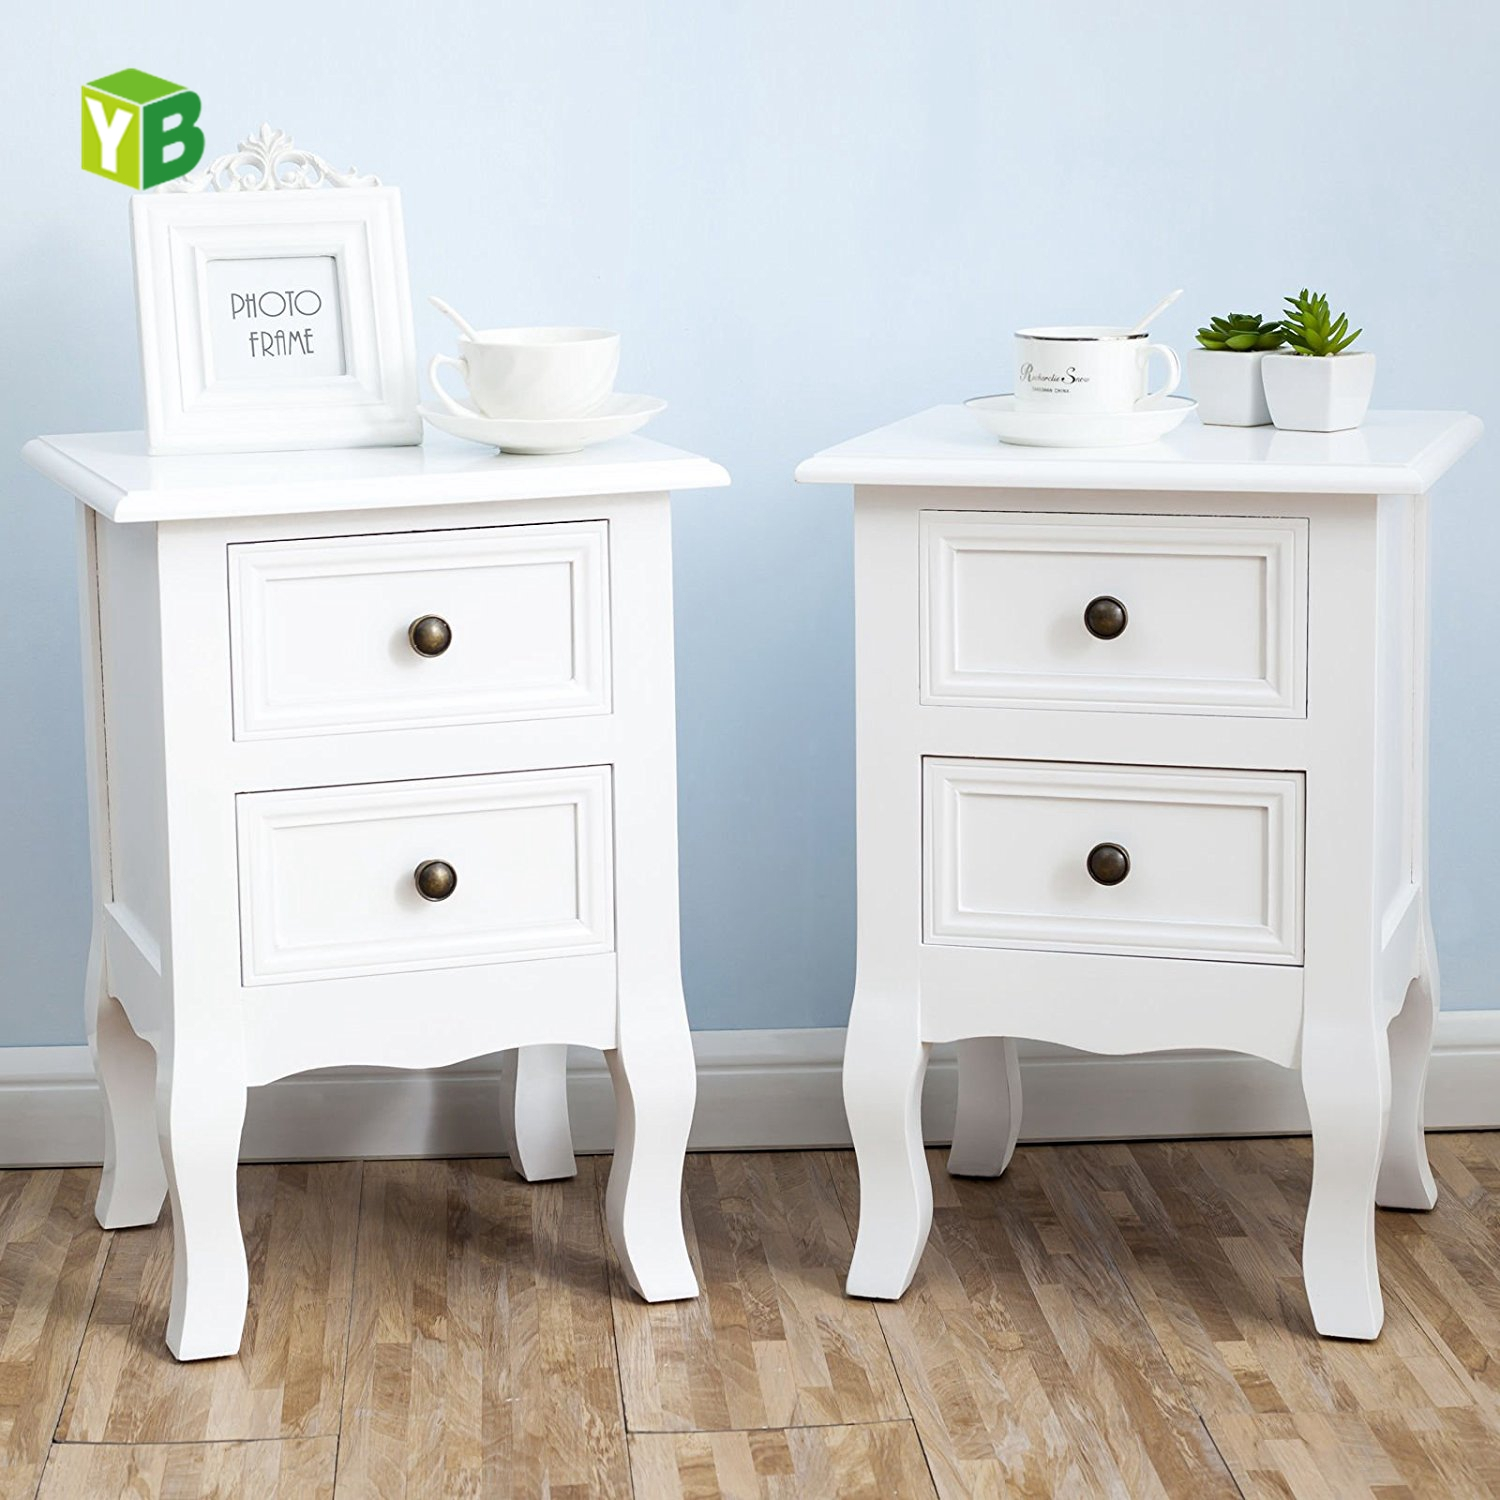 Mdf Nc Paint Cheap French Style Unique White Nightstands View White Nightstands Yb Product Details From Fuzhou Yibang Furniture Co Ltd On Alibaba Com